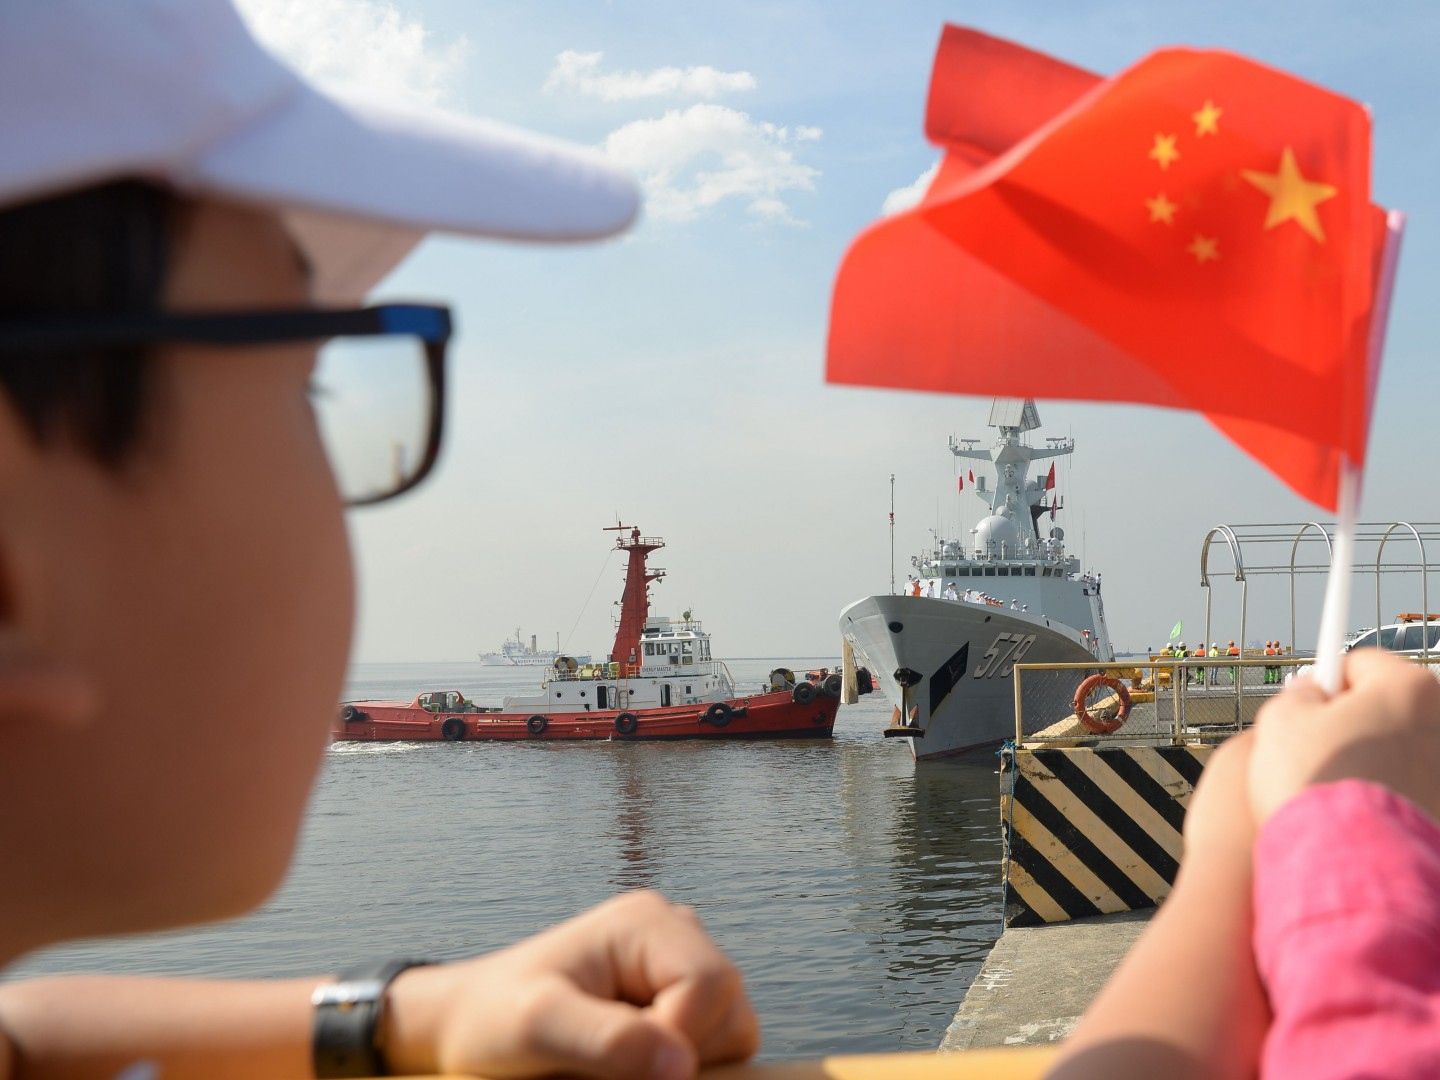 A boy waves a Chinese flag as China's guided-missile frigate Handan (579) prepares to dock at the international port in Manila on January 17, 2019. - A Chinese naval task group, consisting of two frigates -- the Wuhu 539 and Handan 579 -- and a replenishment ship Dongpinghu (960) arrived at Manila's international port for a four-day goodwill visit. (Photo by TED ALJIBE / AFP)